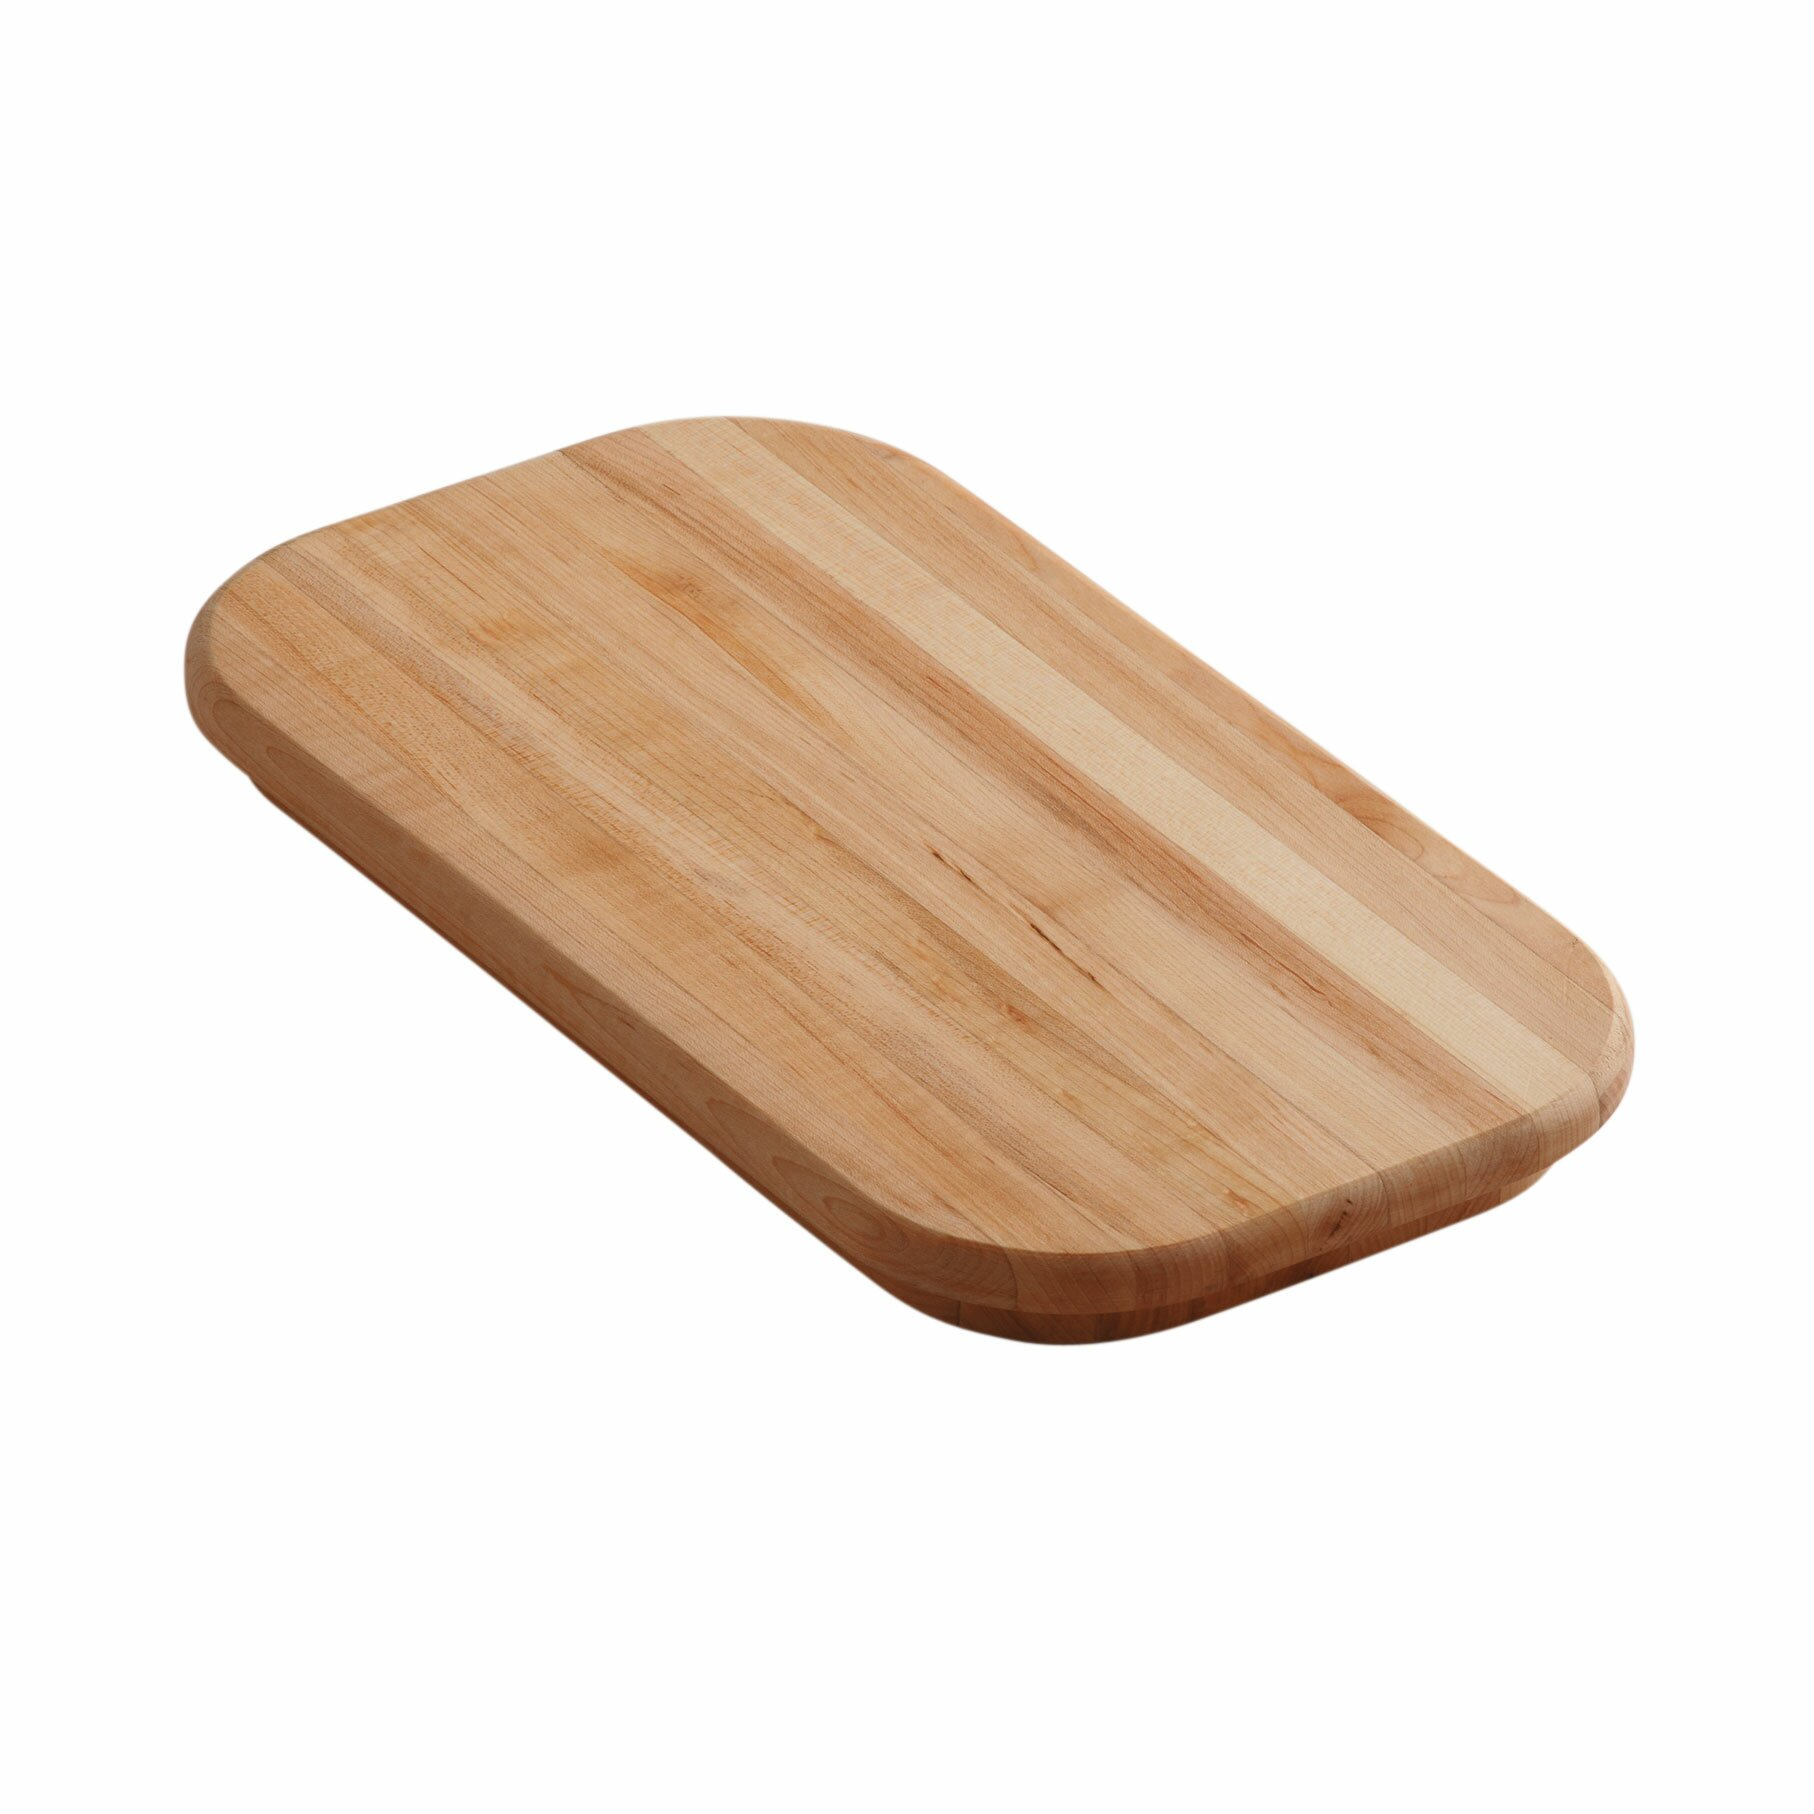 Kohler Staccato Sink : Kohler Staccato Hardwood Cutting Board for Staccato Double-Equal Sink ...